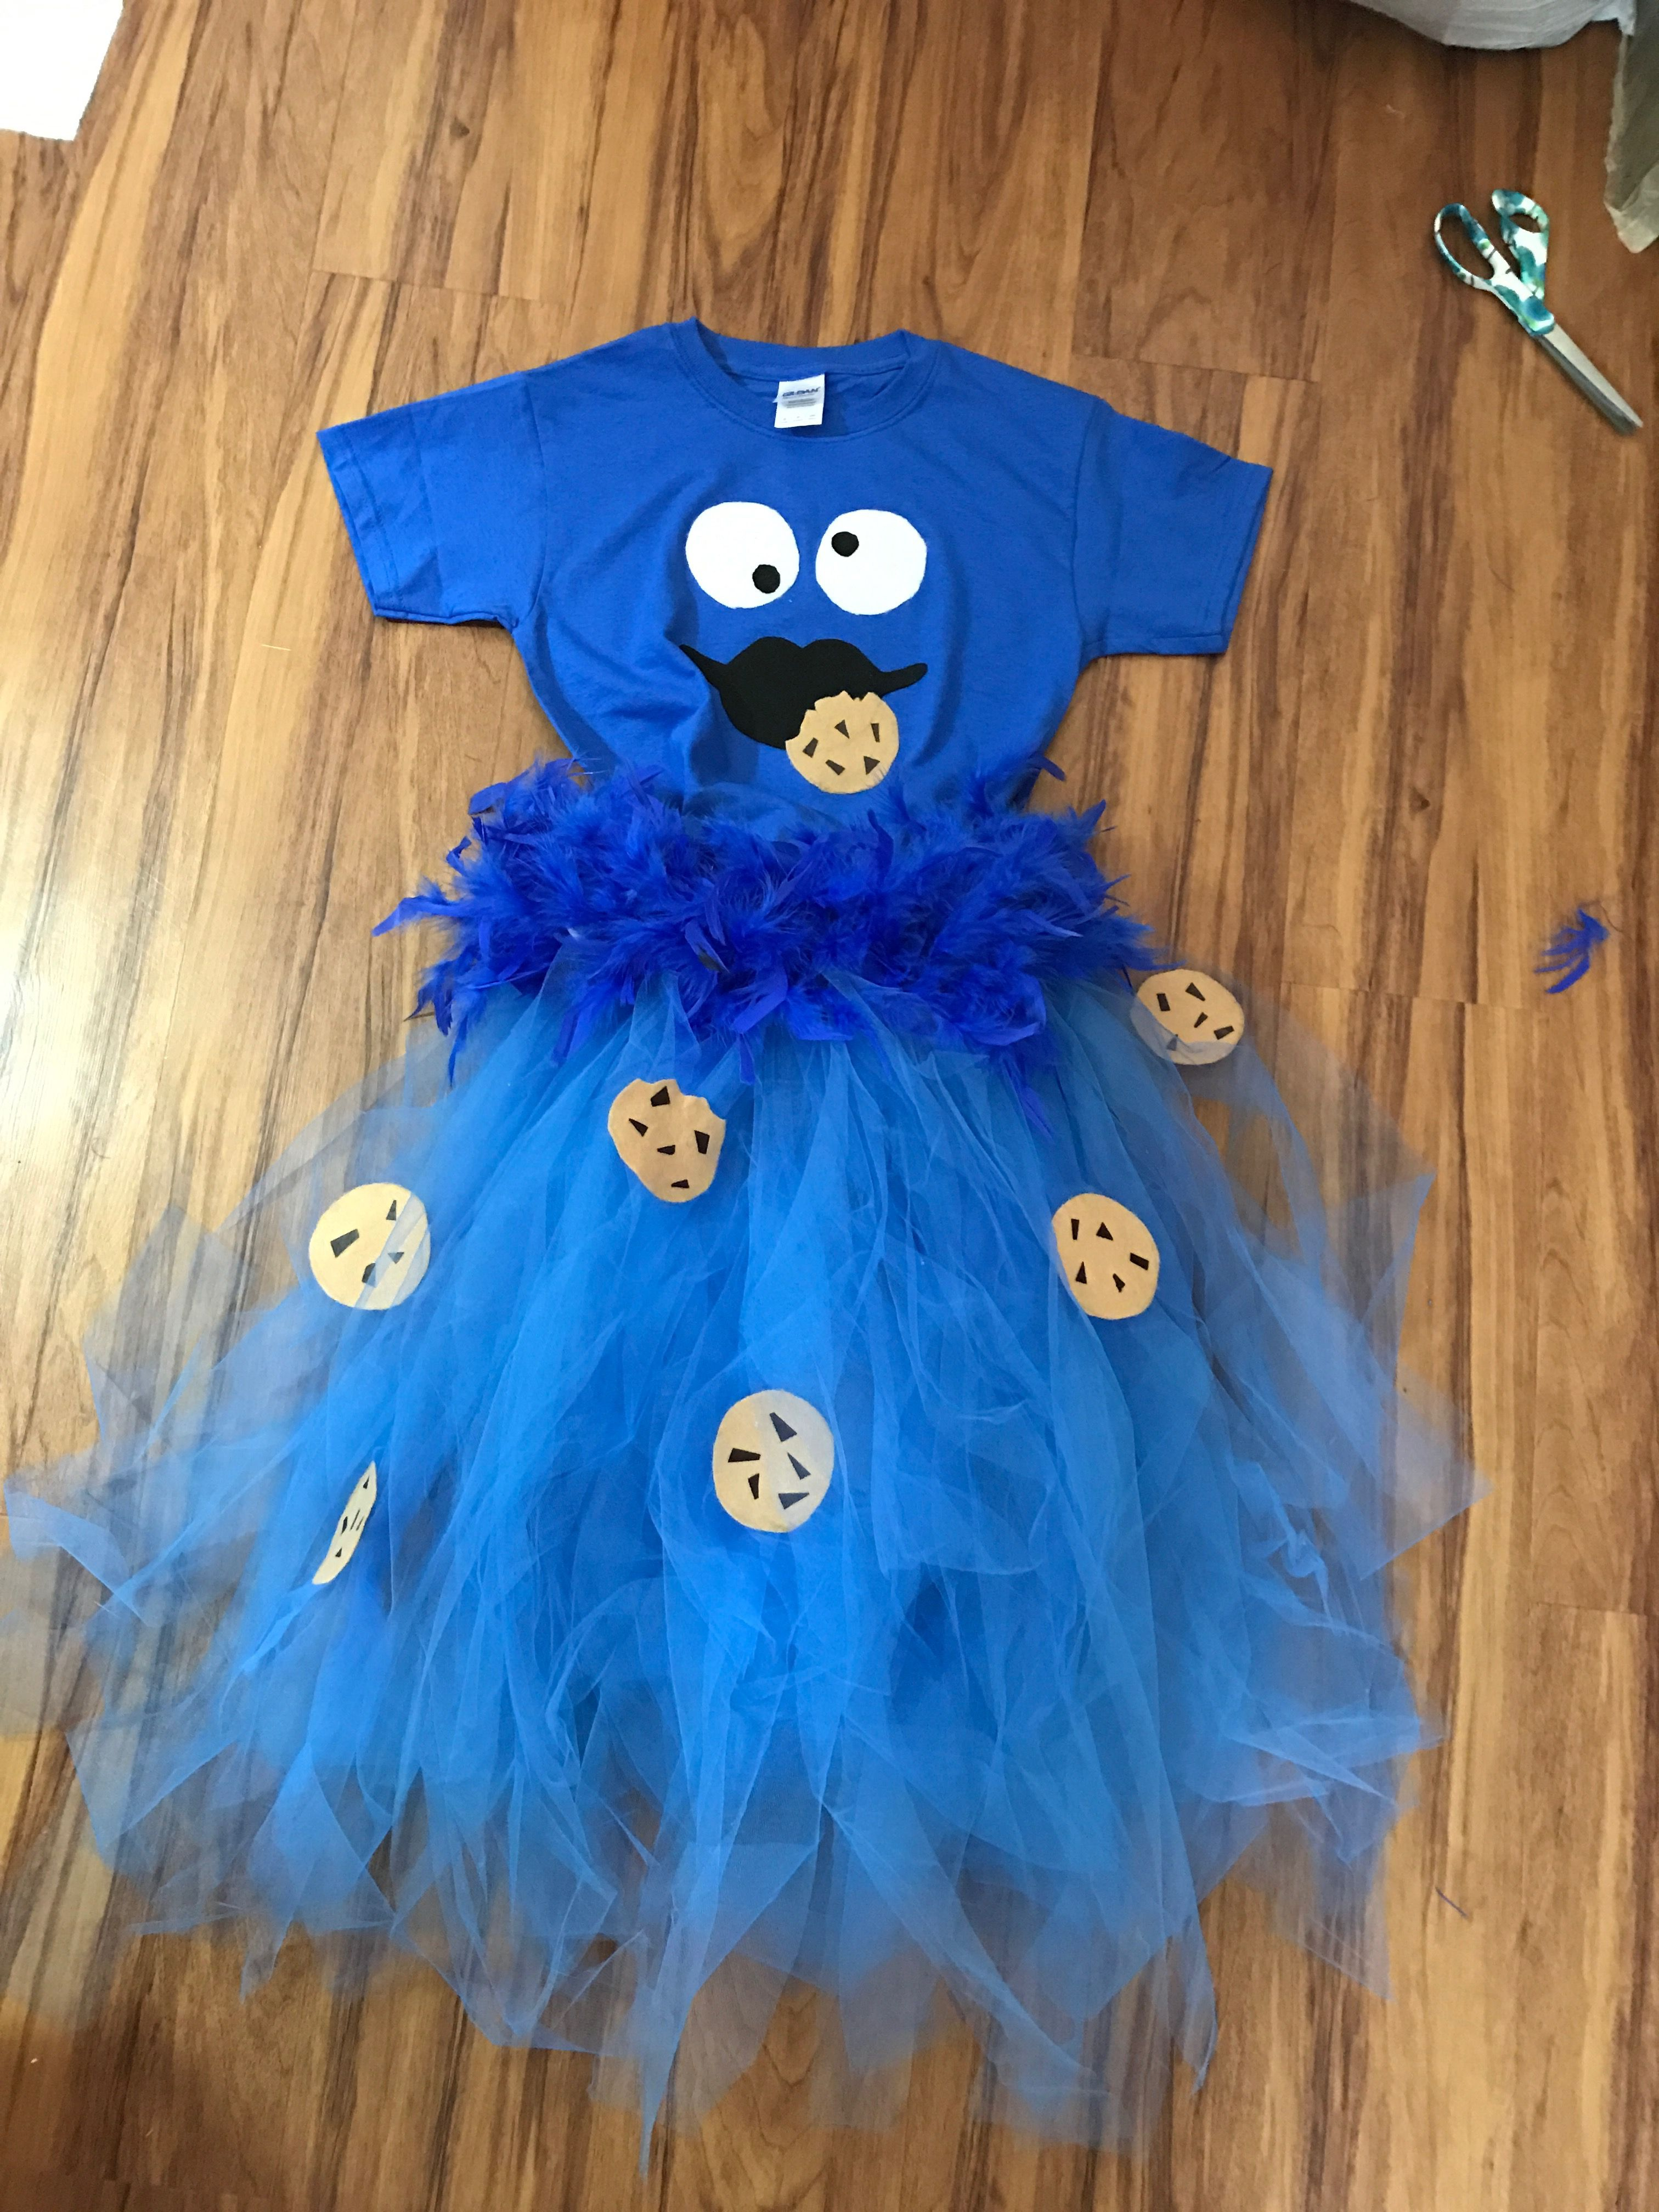 Cookie monster costume for my niece with images cookie